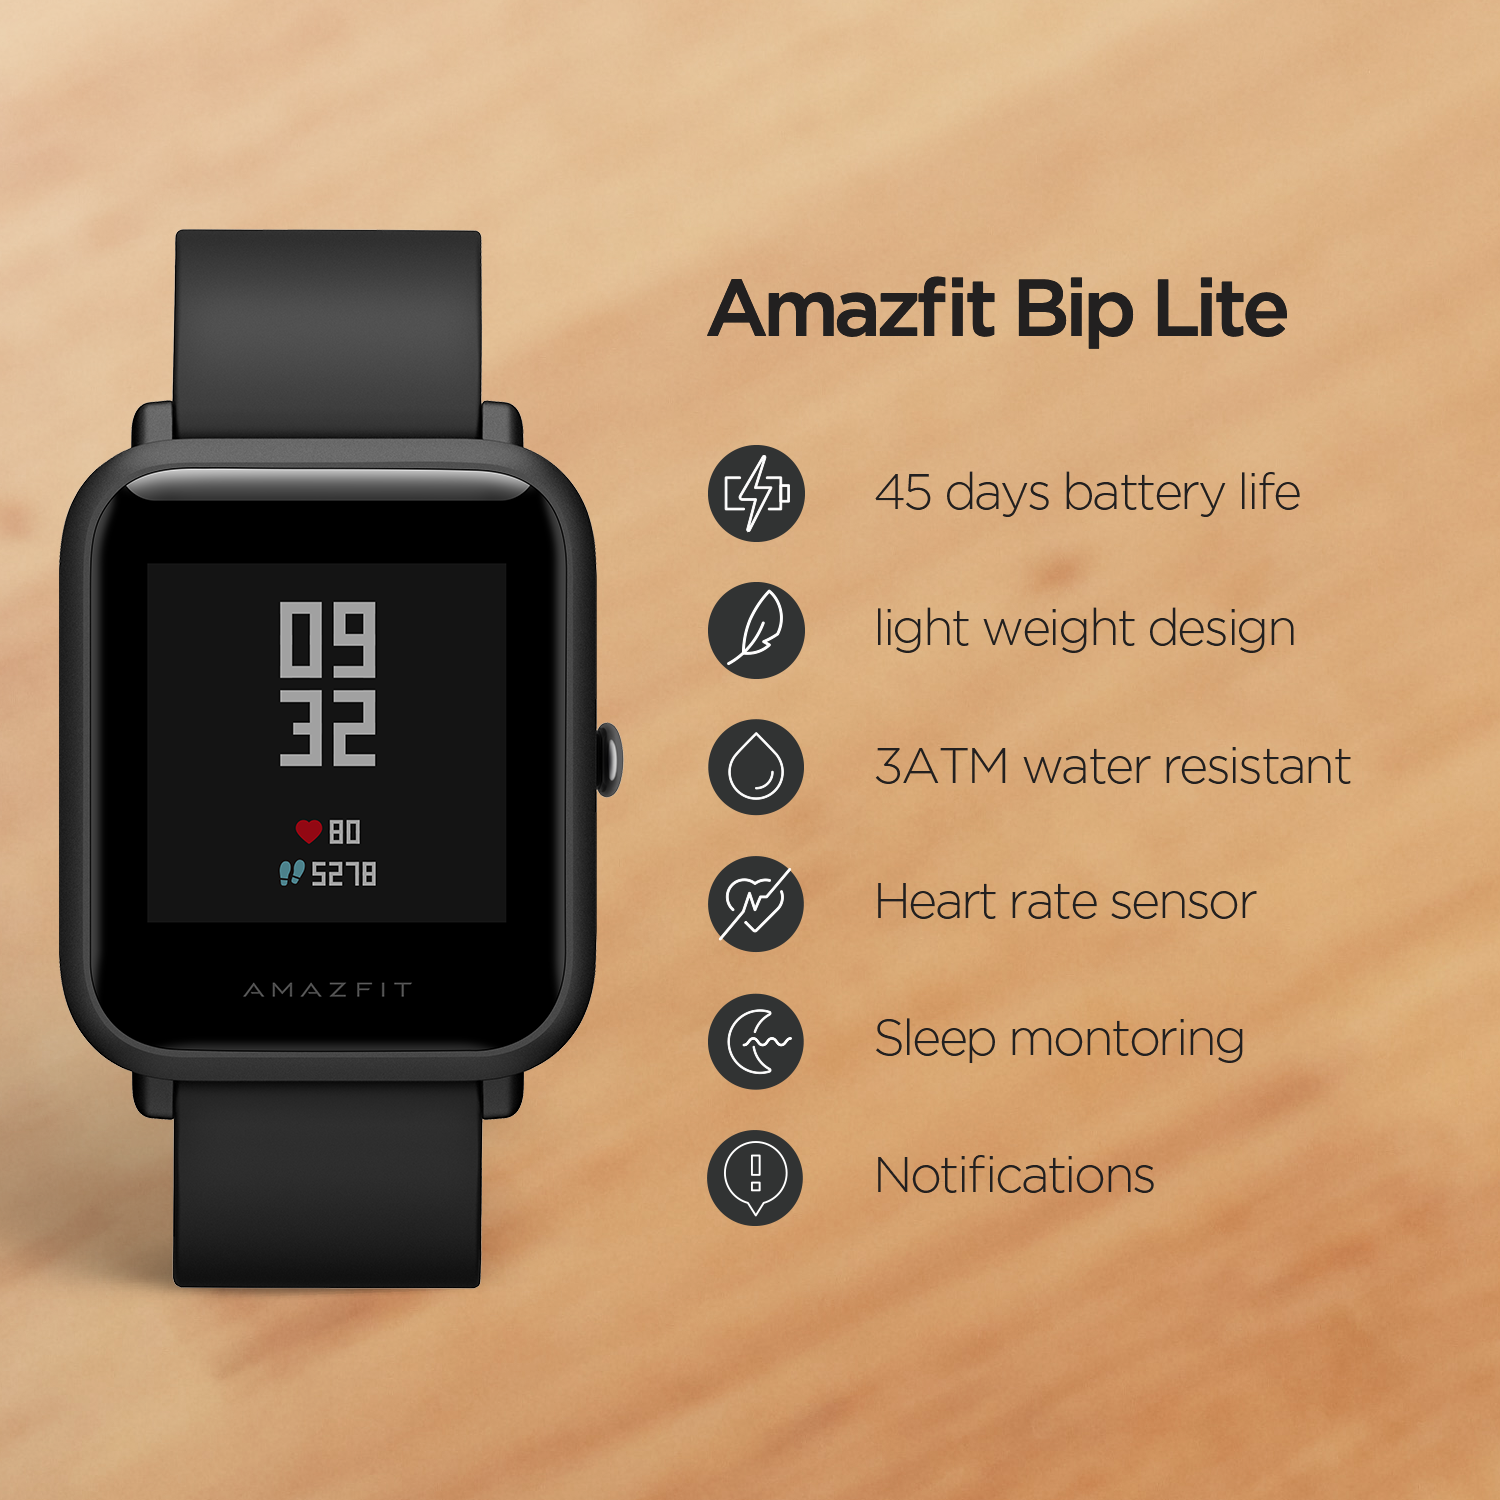 Image 3 - In Stock Global Version Amazfit Bip Lite Smart Watch 45 Day Battery Life 3ATM Water resistance Smartwatch For Xiaomi New 2019-in Smart Watches from Consumer Electronics